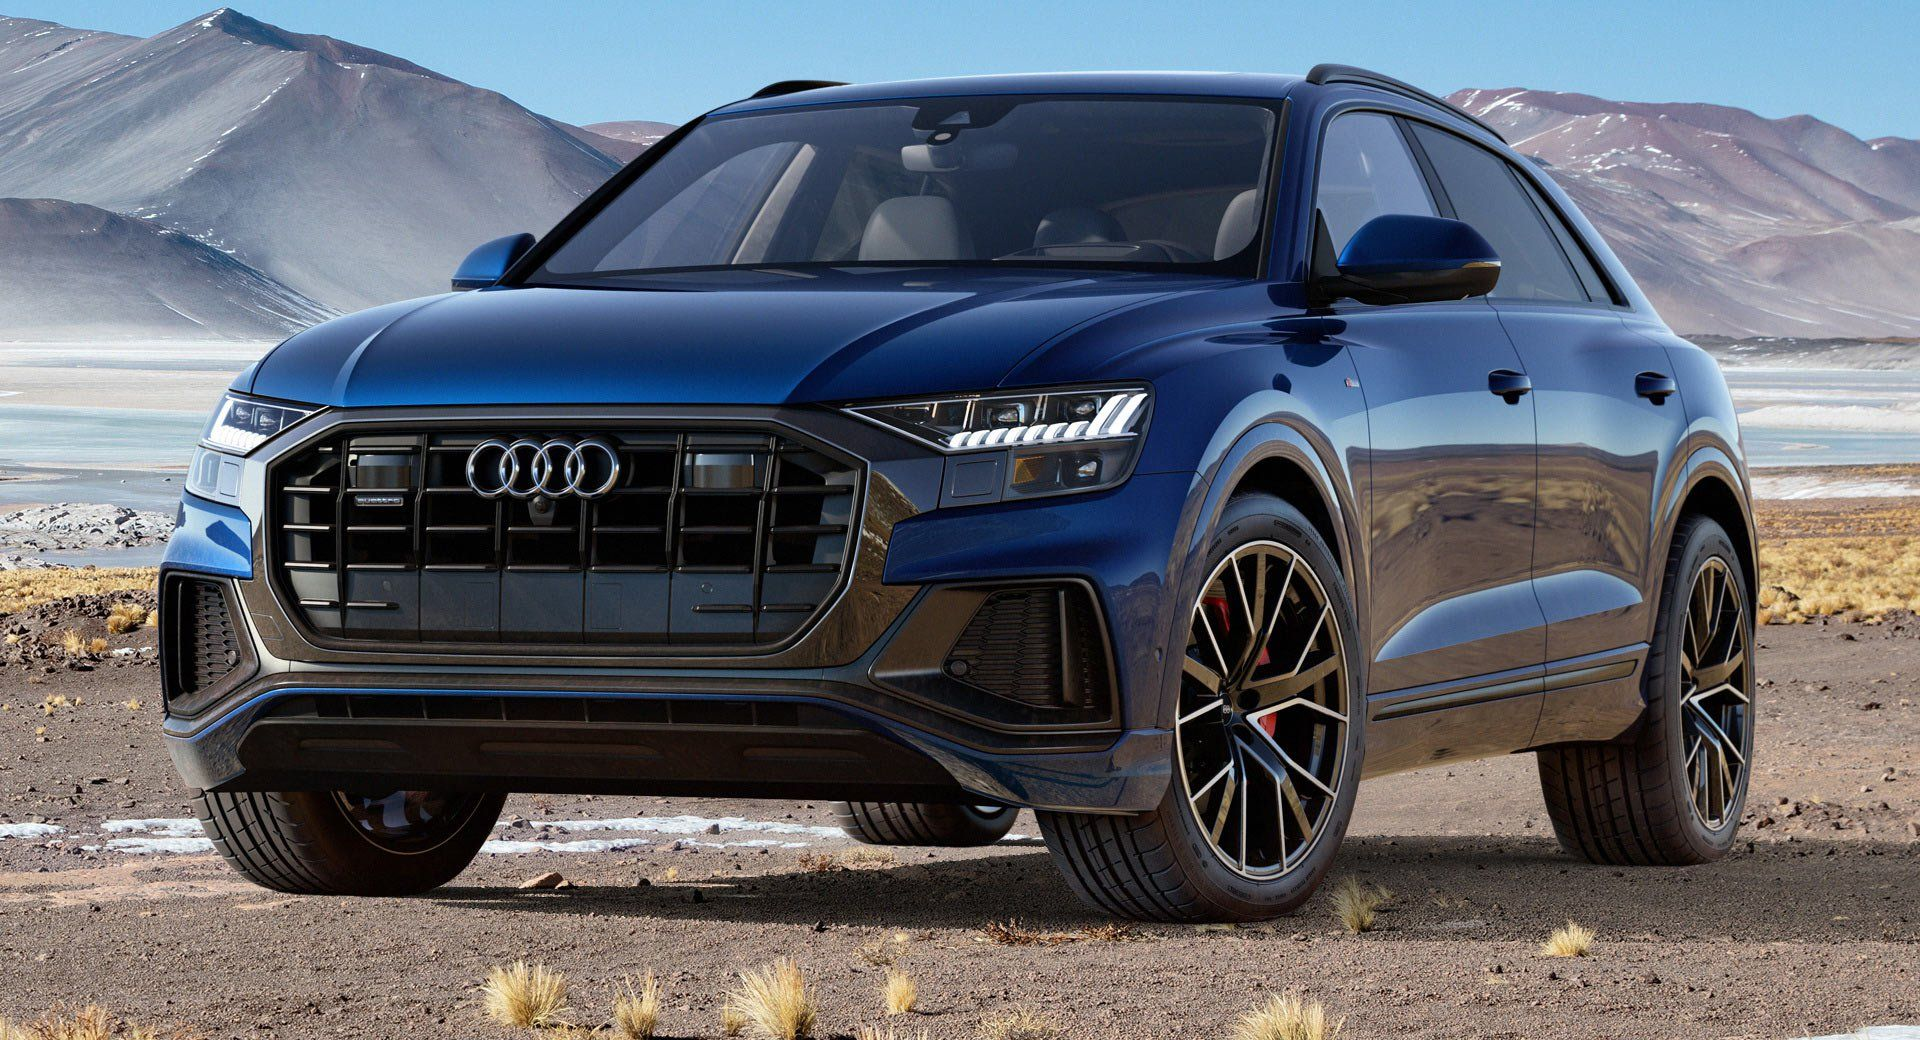 2019 Audi Q8 Arrives In The Us With A Single Engine Option And Lots Of Attitude Carscoops Audi Audi Suv Audi Cars